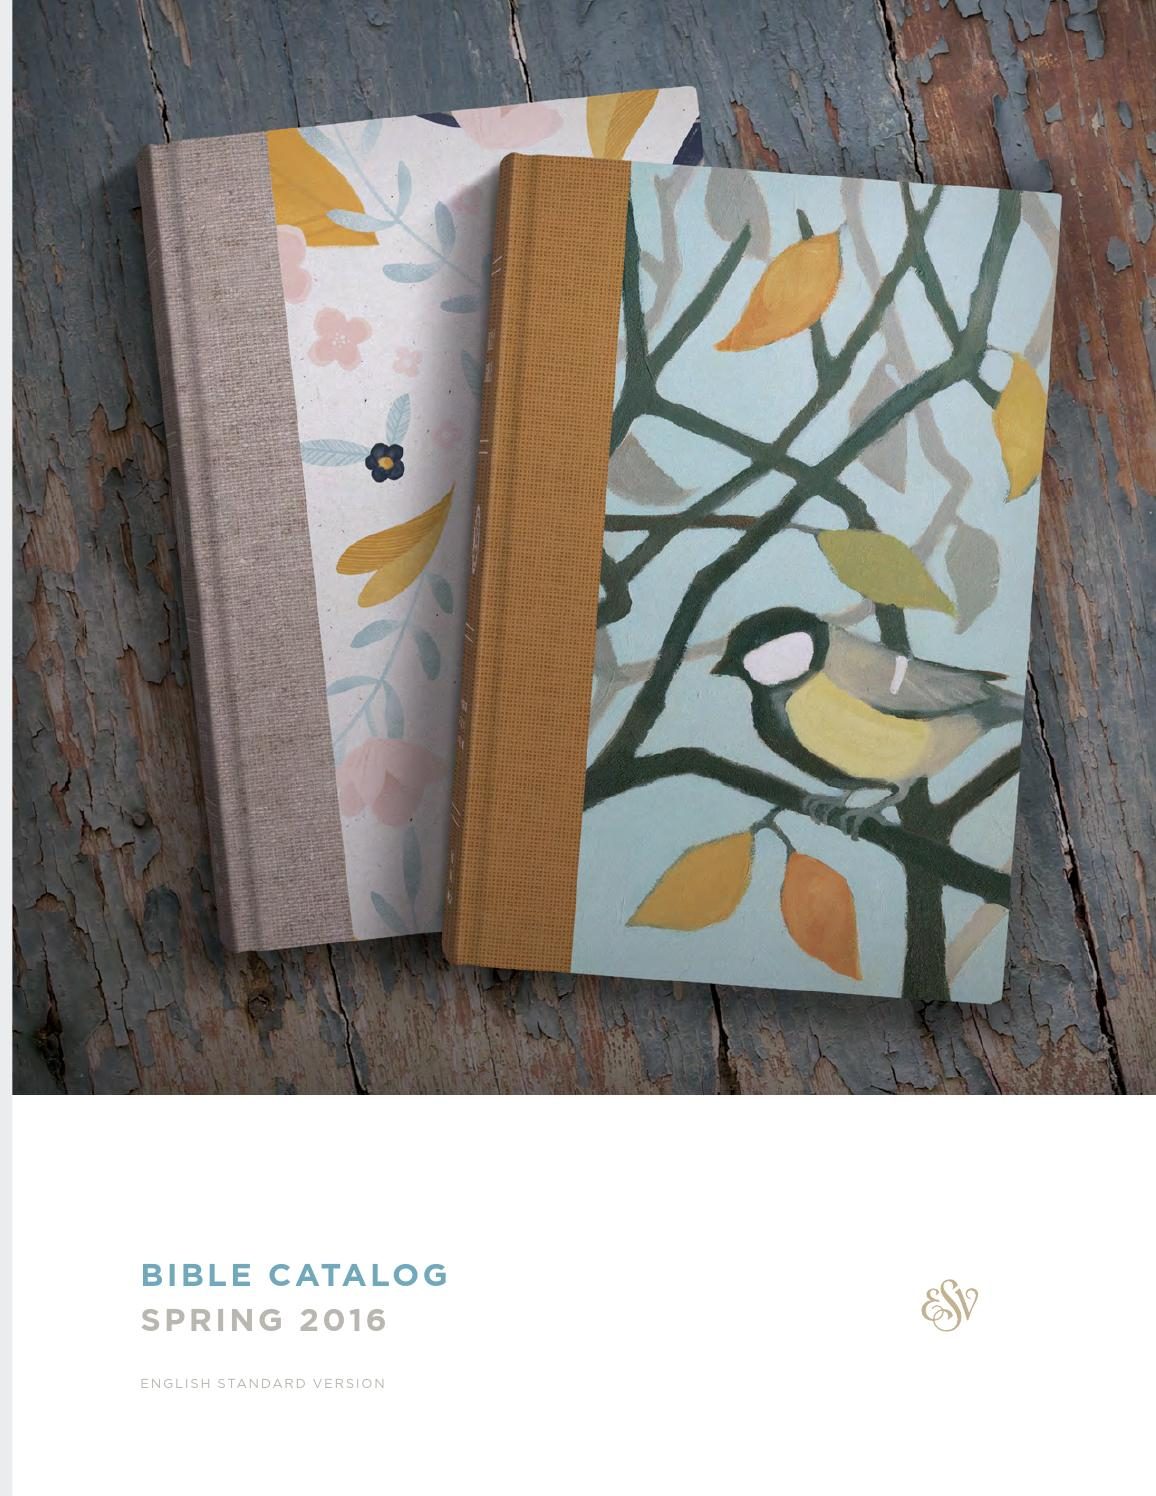 Esv spring 2016 bible catalog by crossway issuu for Garden design bible